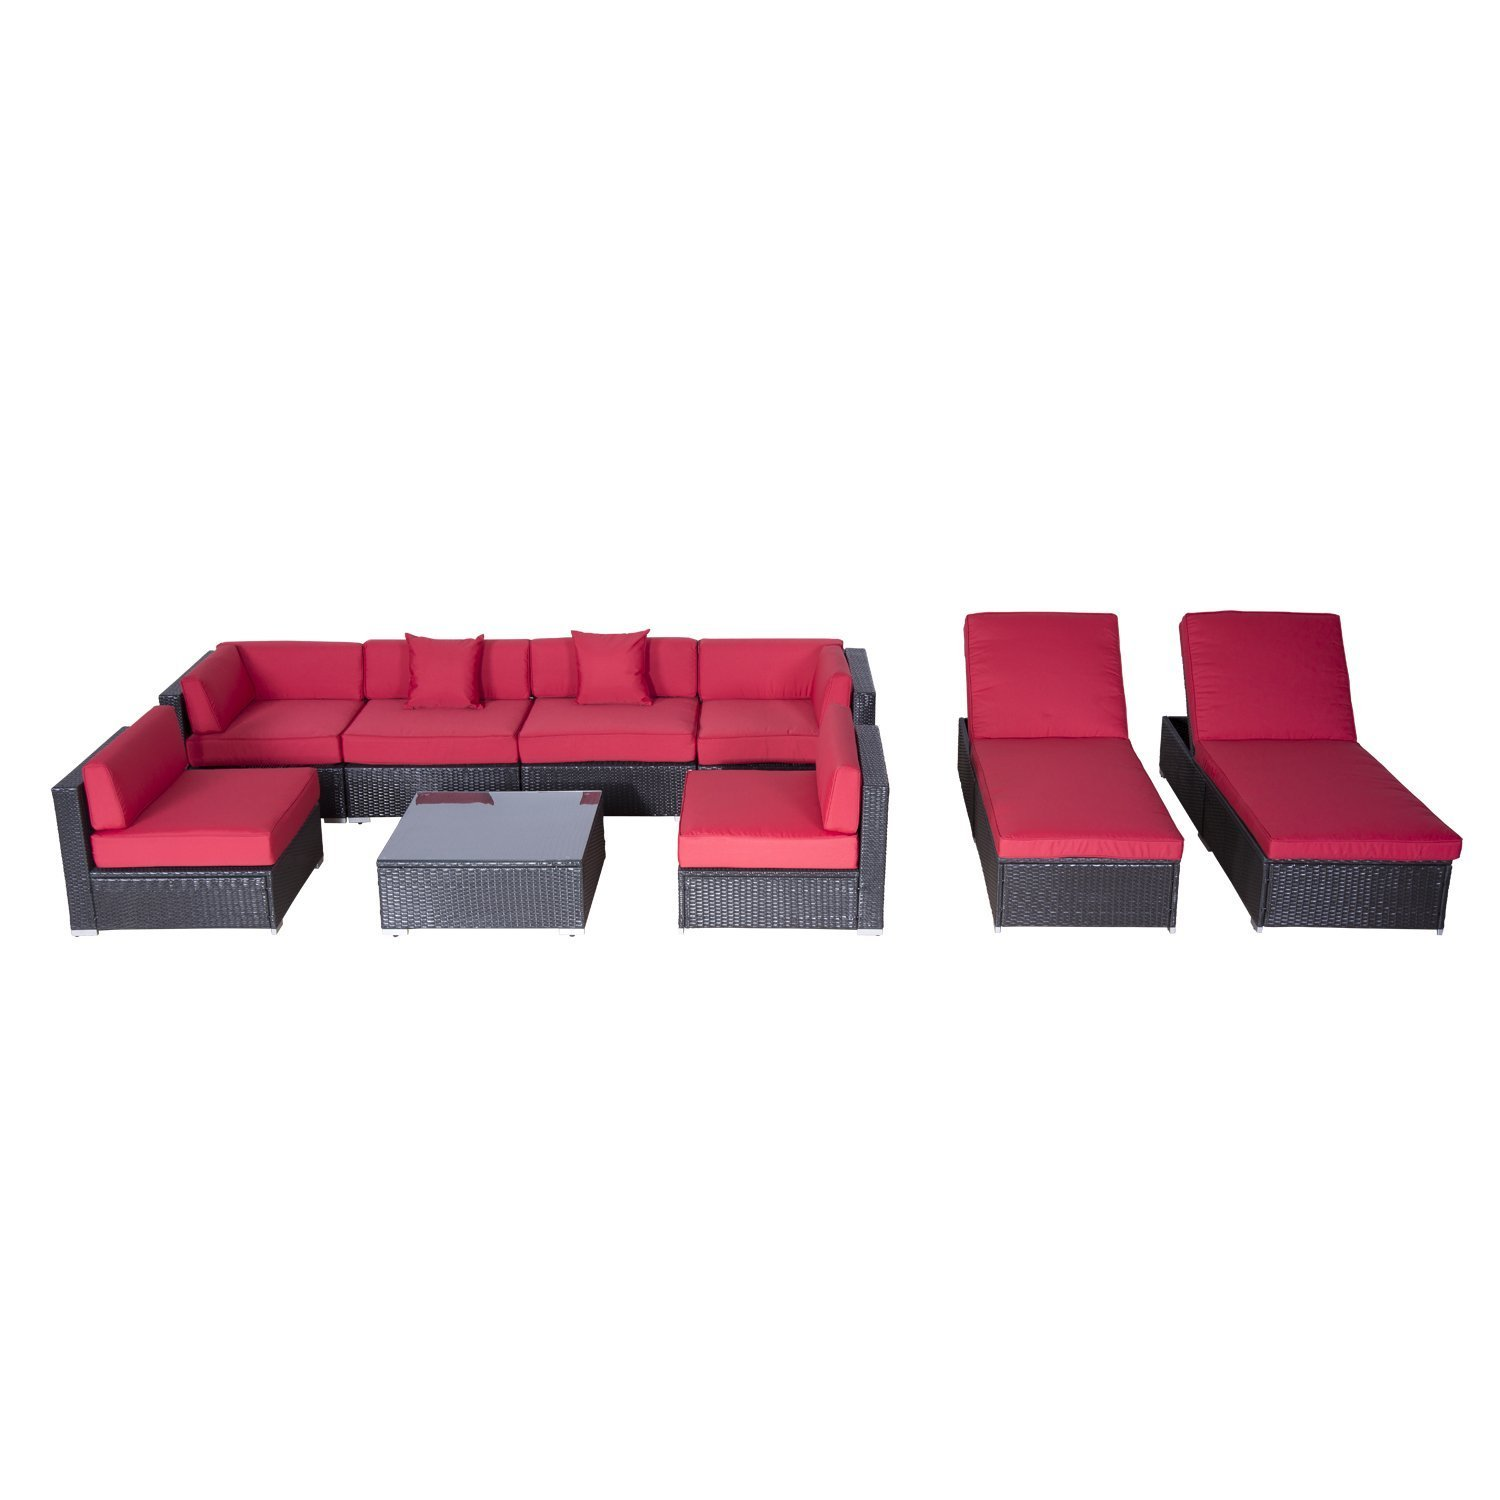 Wicker patio furniture set outdoor sofa sectional chaise for Chaise lounge couch set